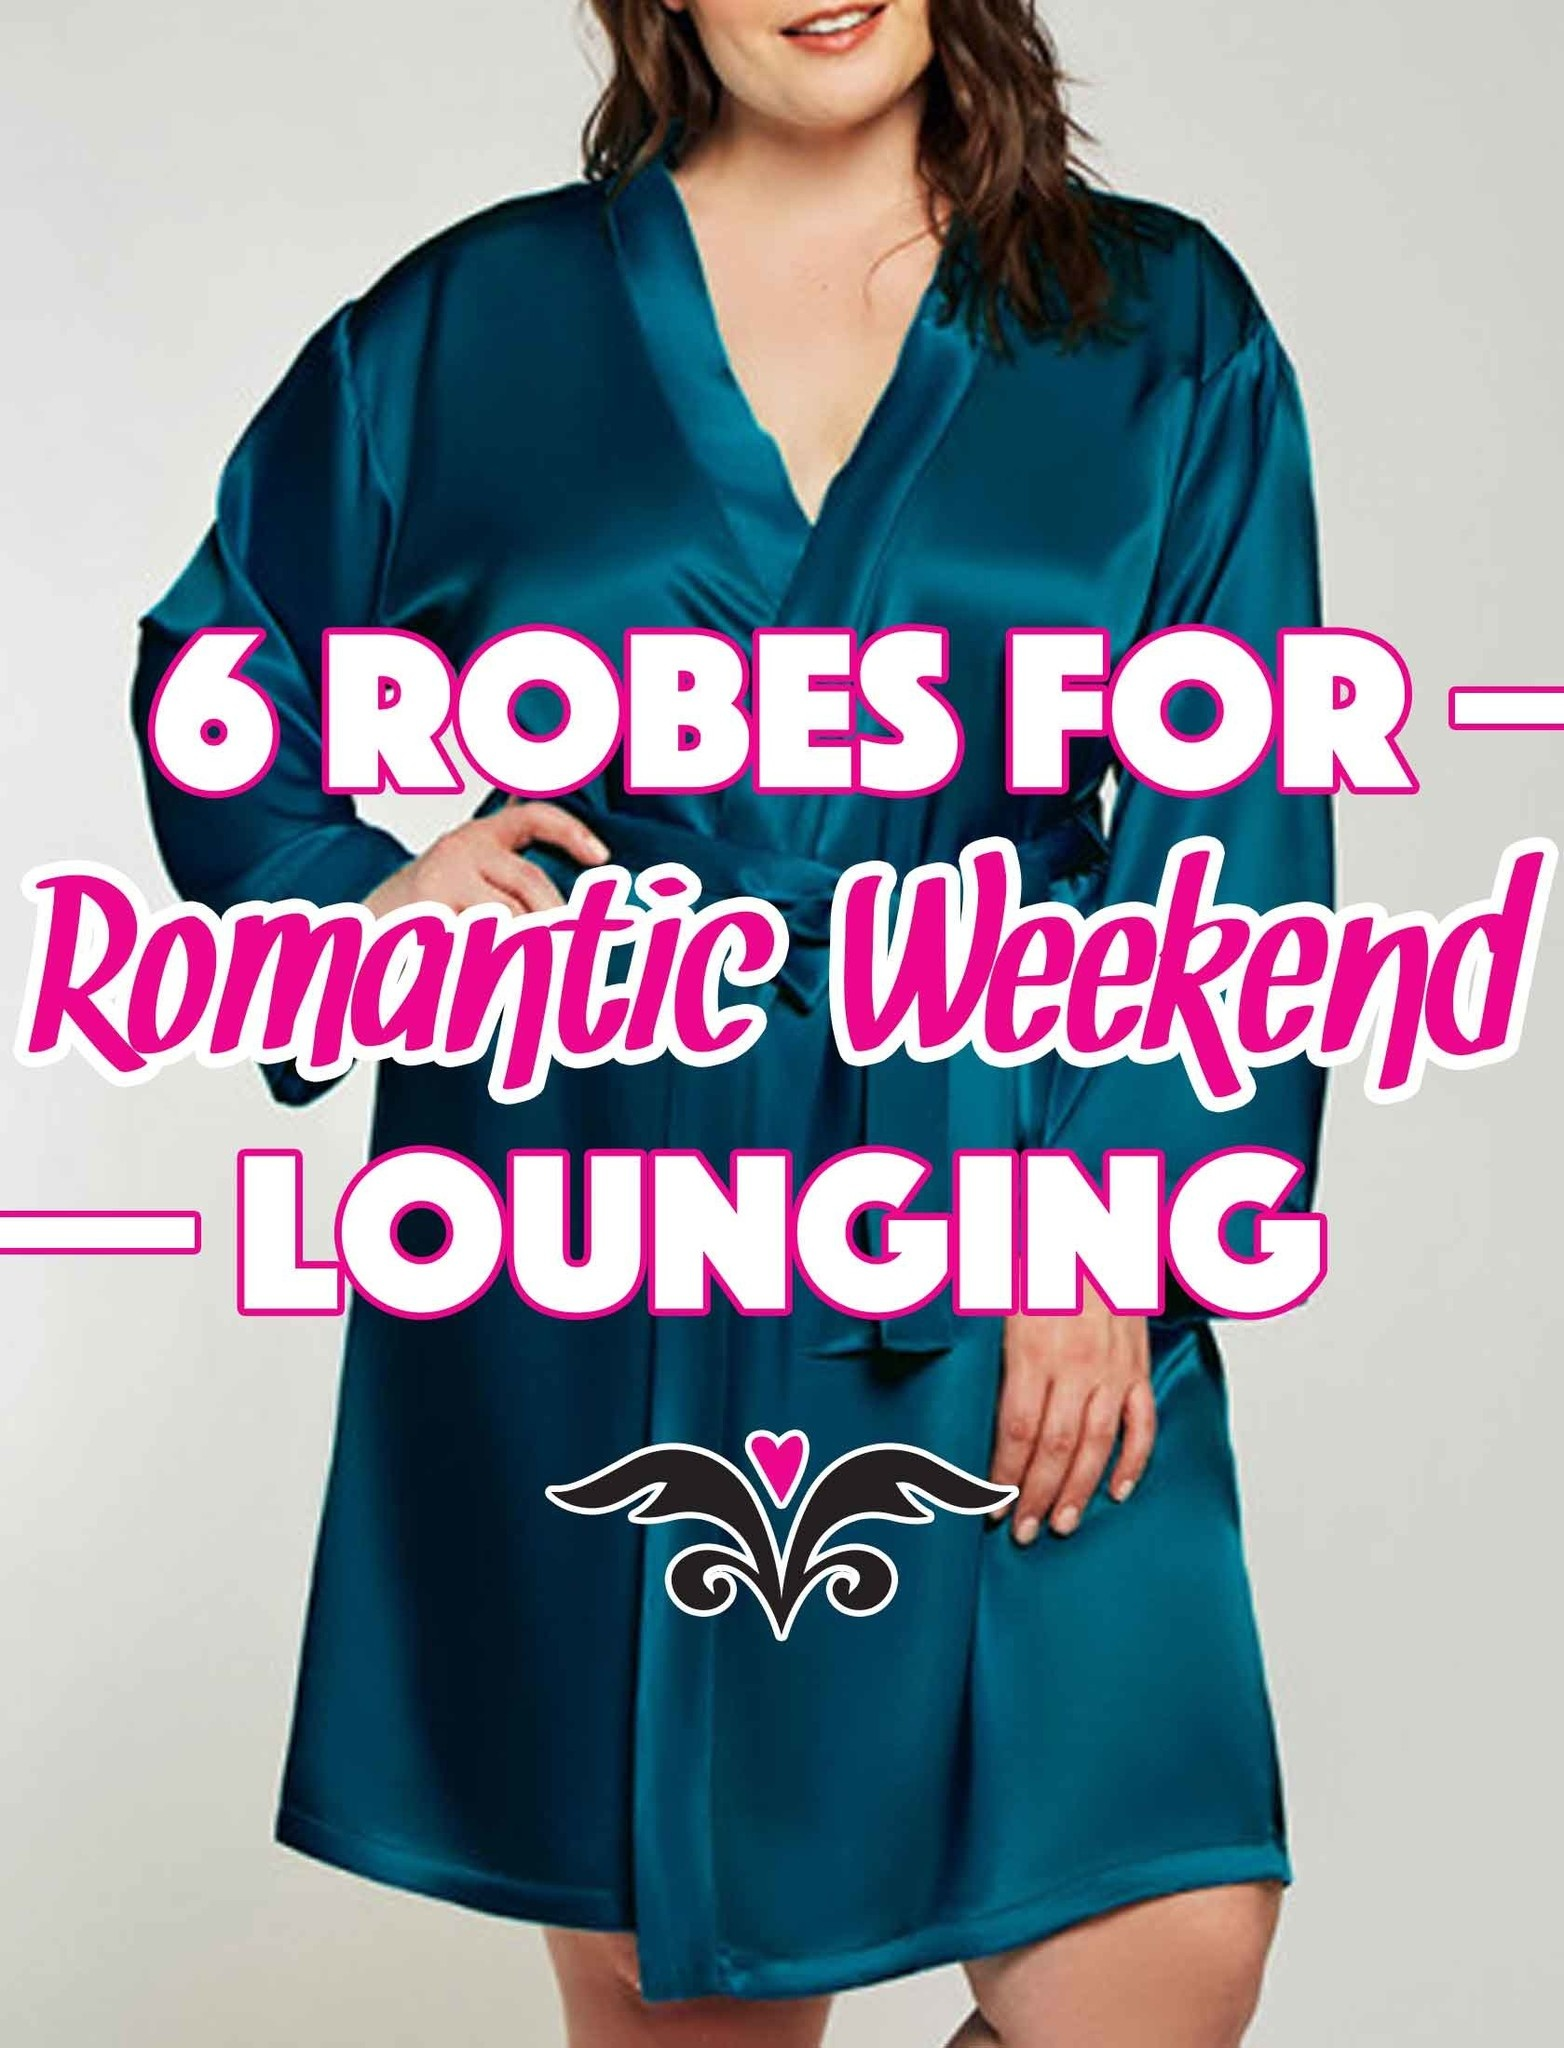 6 Robes for Romantic Weekend Lounging